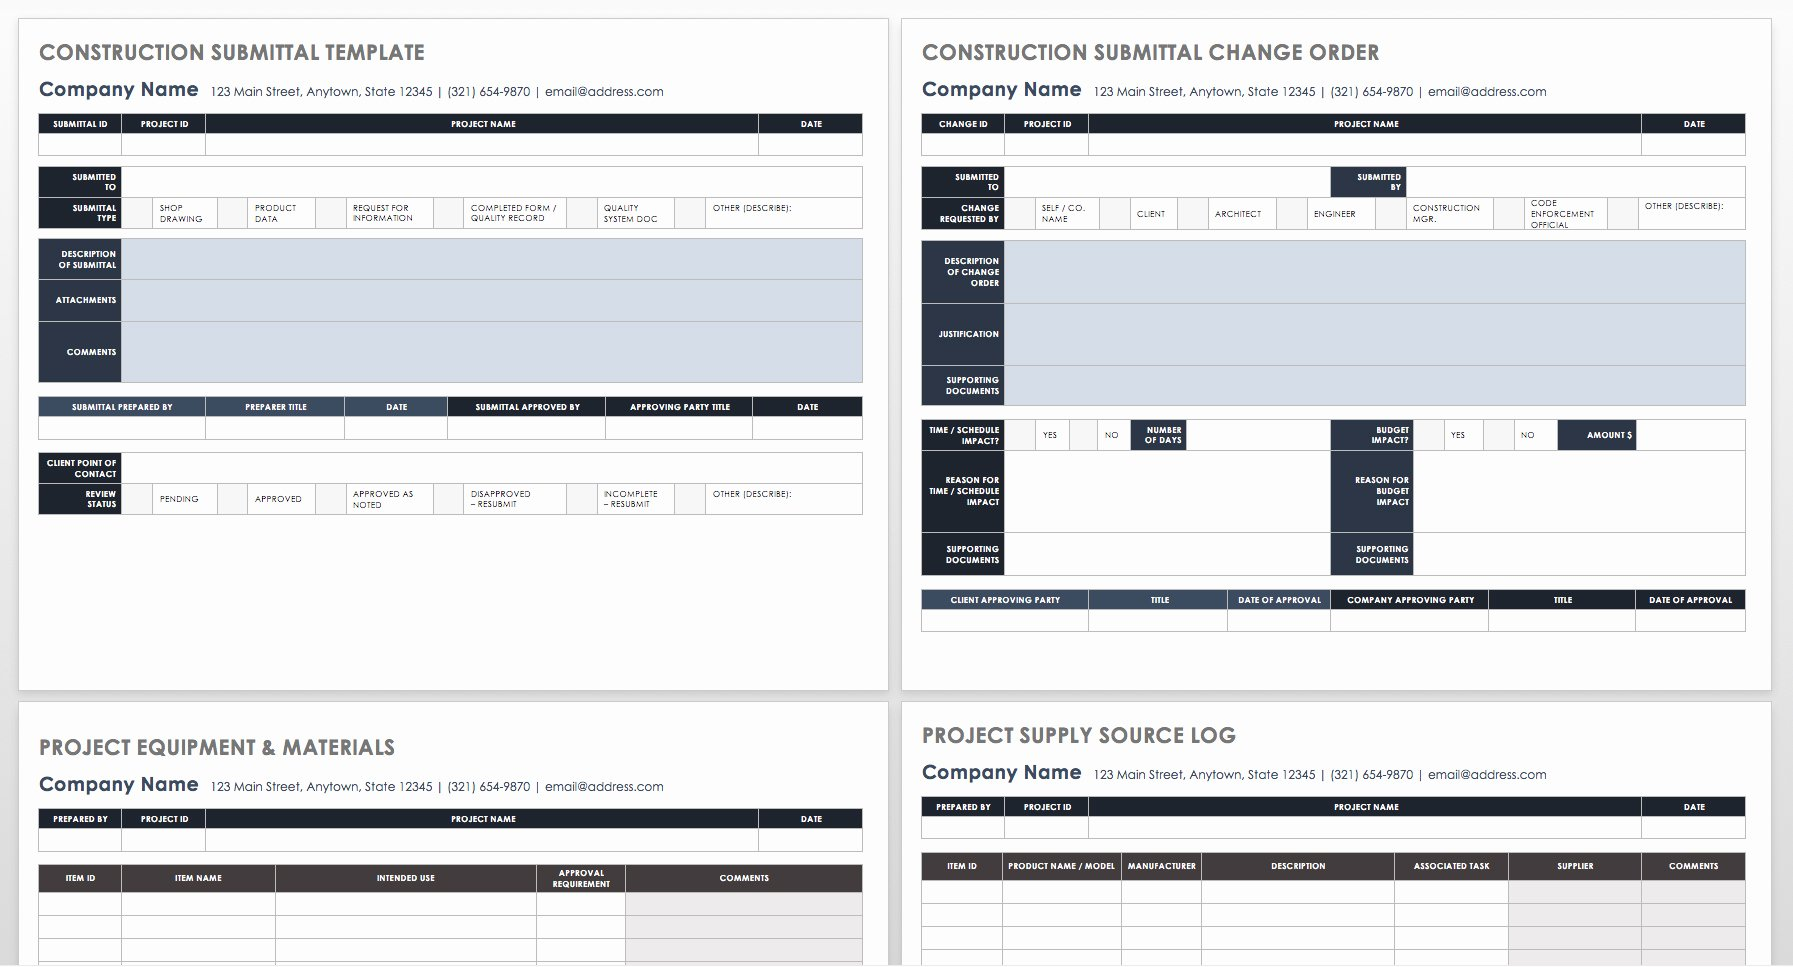 Construction Submittal form Template Inspirational How to Manage Construction Submittals